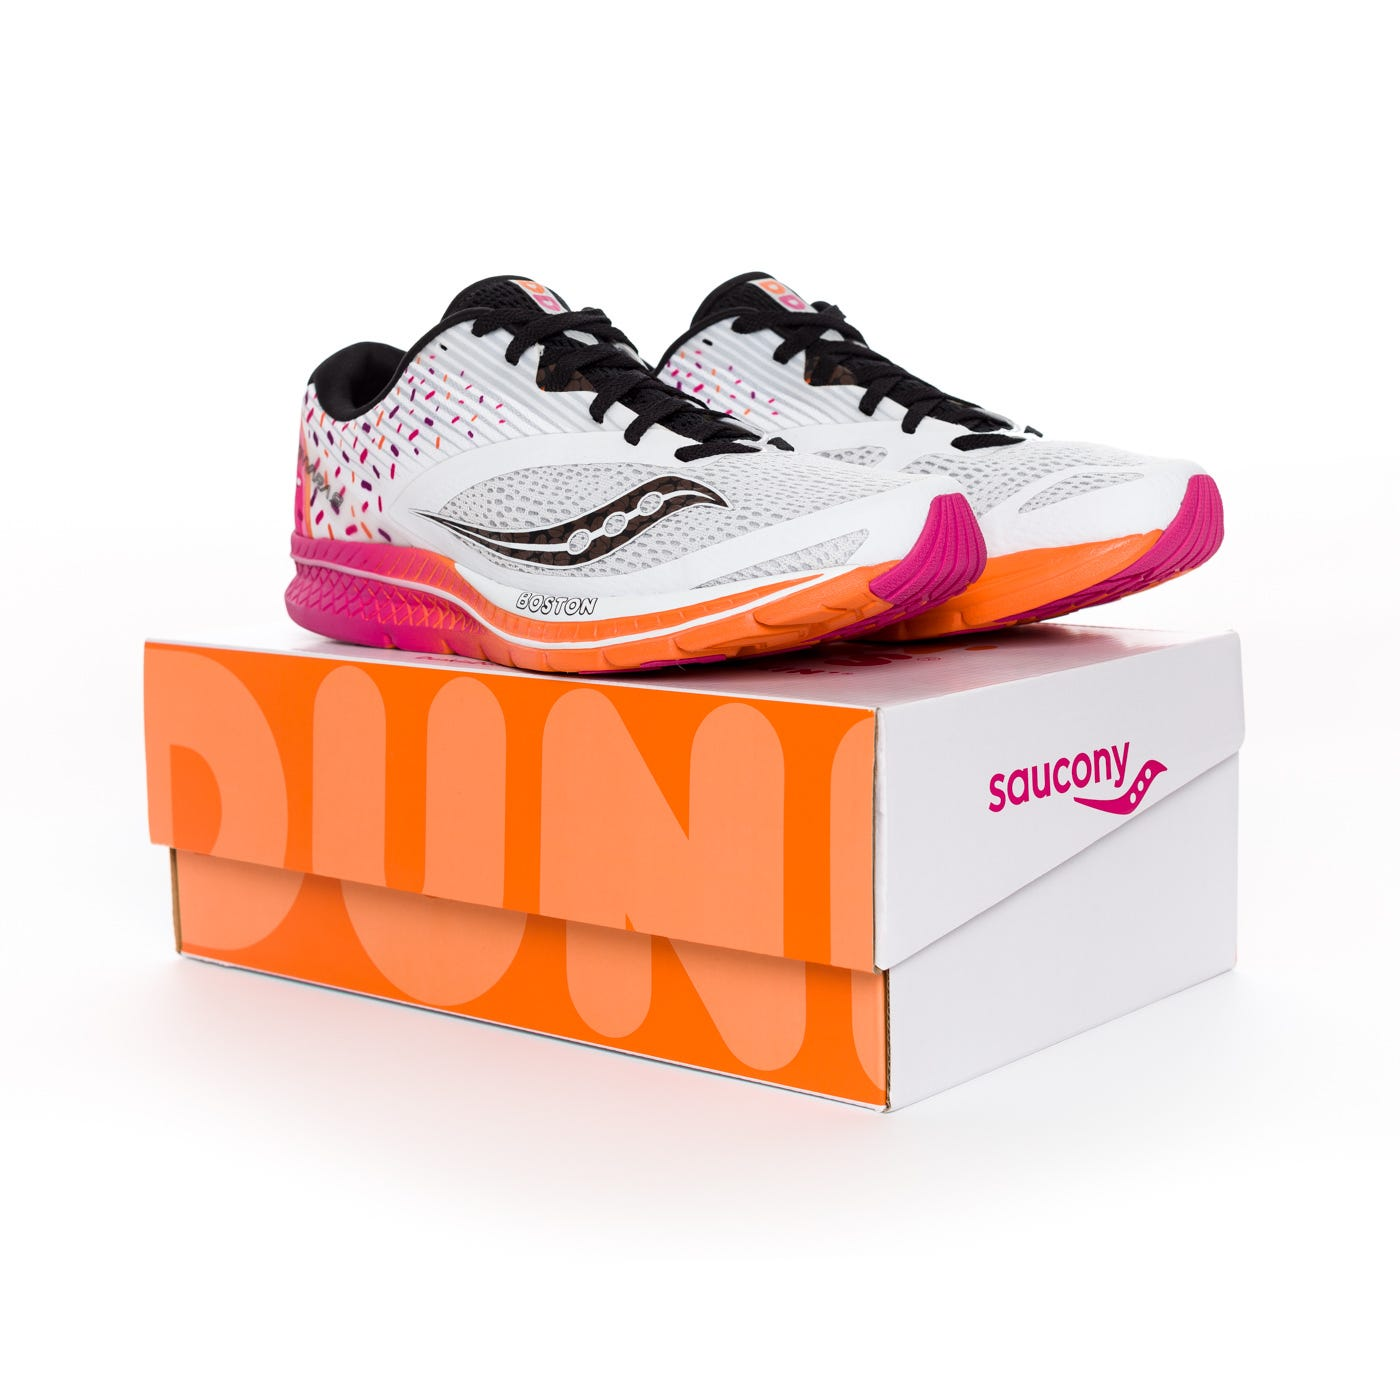 Dunkin' Donuts, Saucony launch a